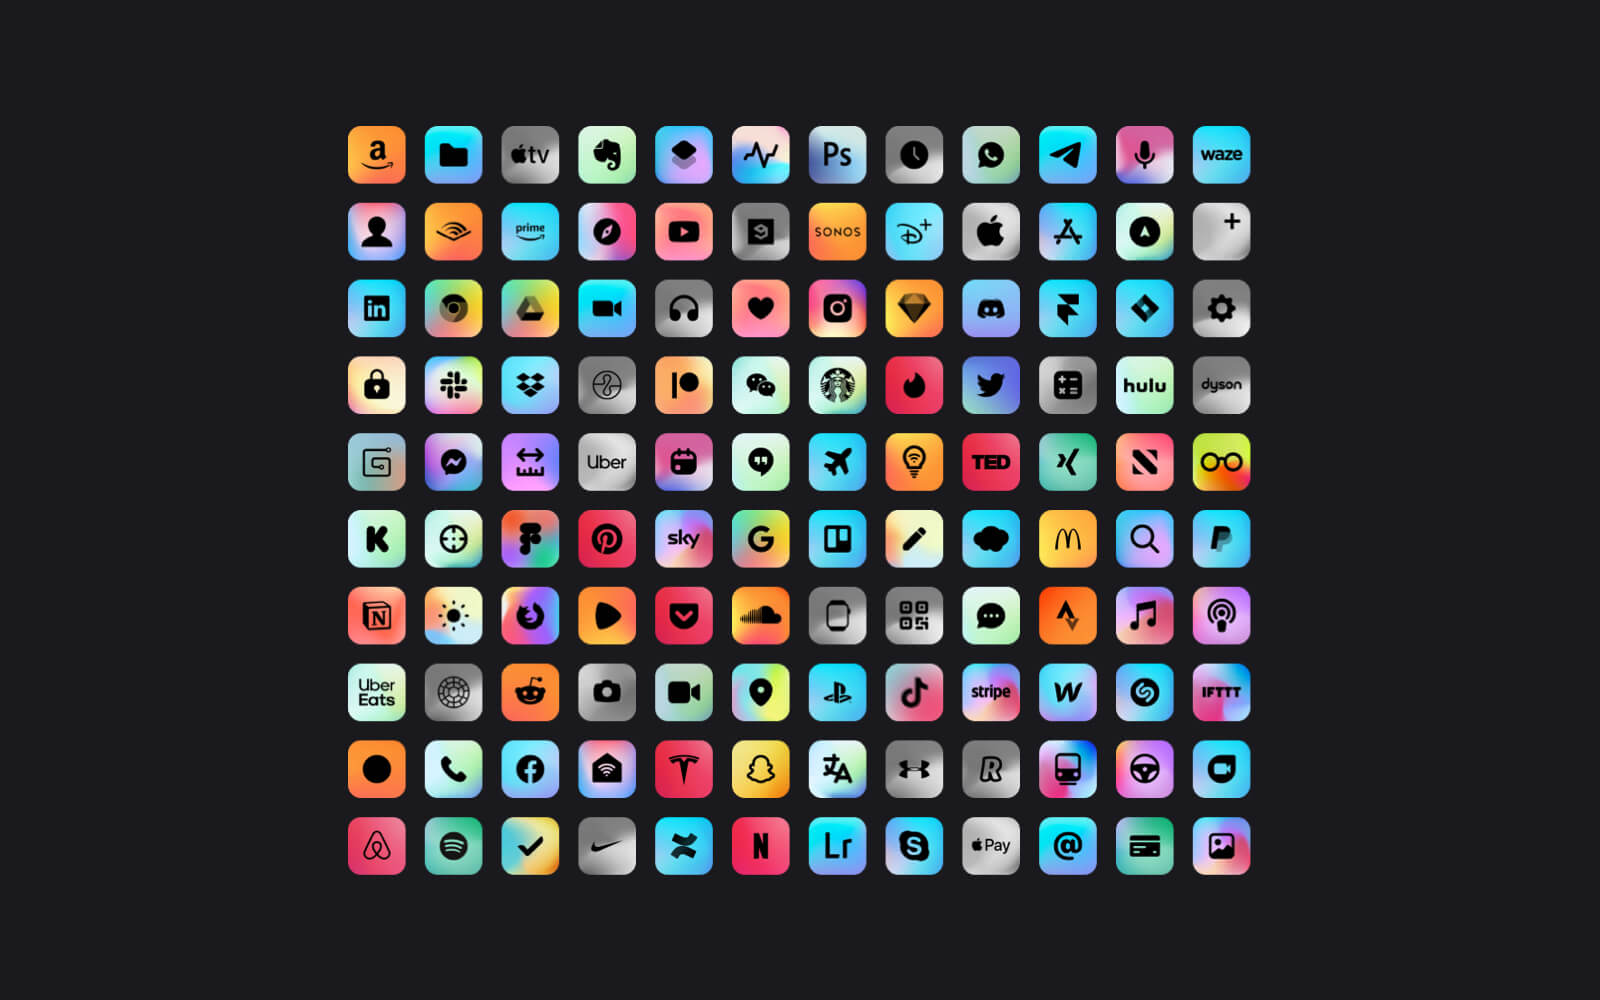 Overview of all ambient app icons from the Ambient icon pack for iOS and iPadOS